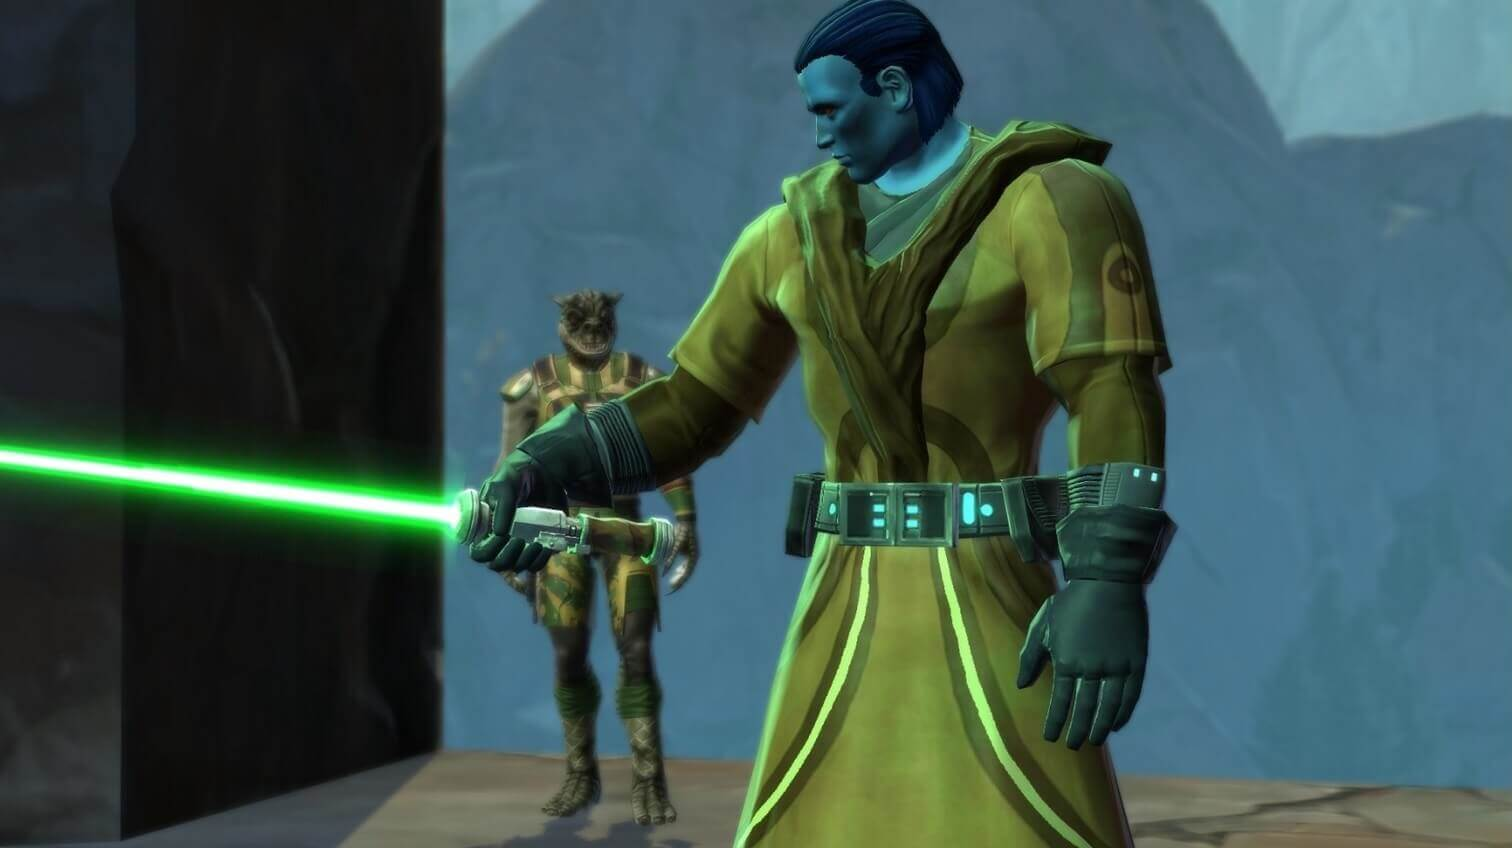 SWTOR Jedi counselor